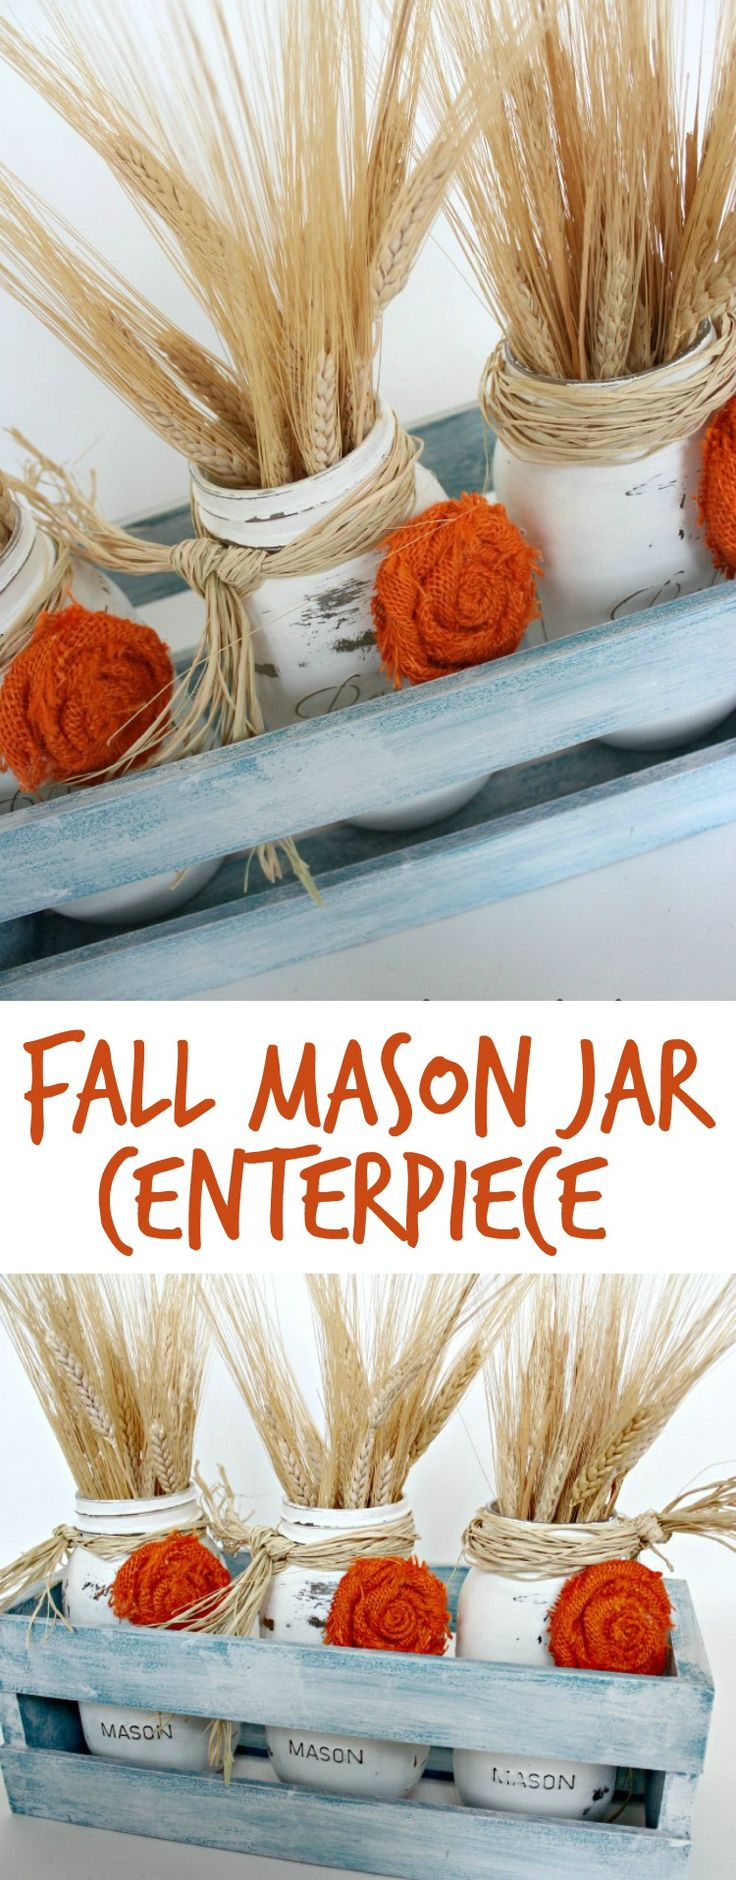 This Easy Fall DIY Centerpiece is a perfect Fall decor accent for the home. OHMY-CREATIVE.COM | Fall Decor | Mason Jar Centerpiece | Fall Mason Jar Craft | Fall Decorating | Painted Mason Jars | How to make a rosette | Wheat Fall decor | How to decorate for Fall | Crate Decor | Fall Mason Jar Decor | Fall Home Decor